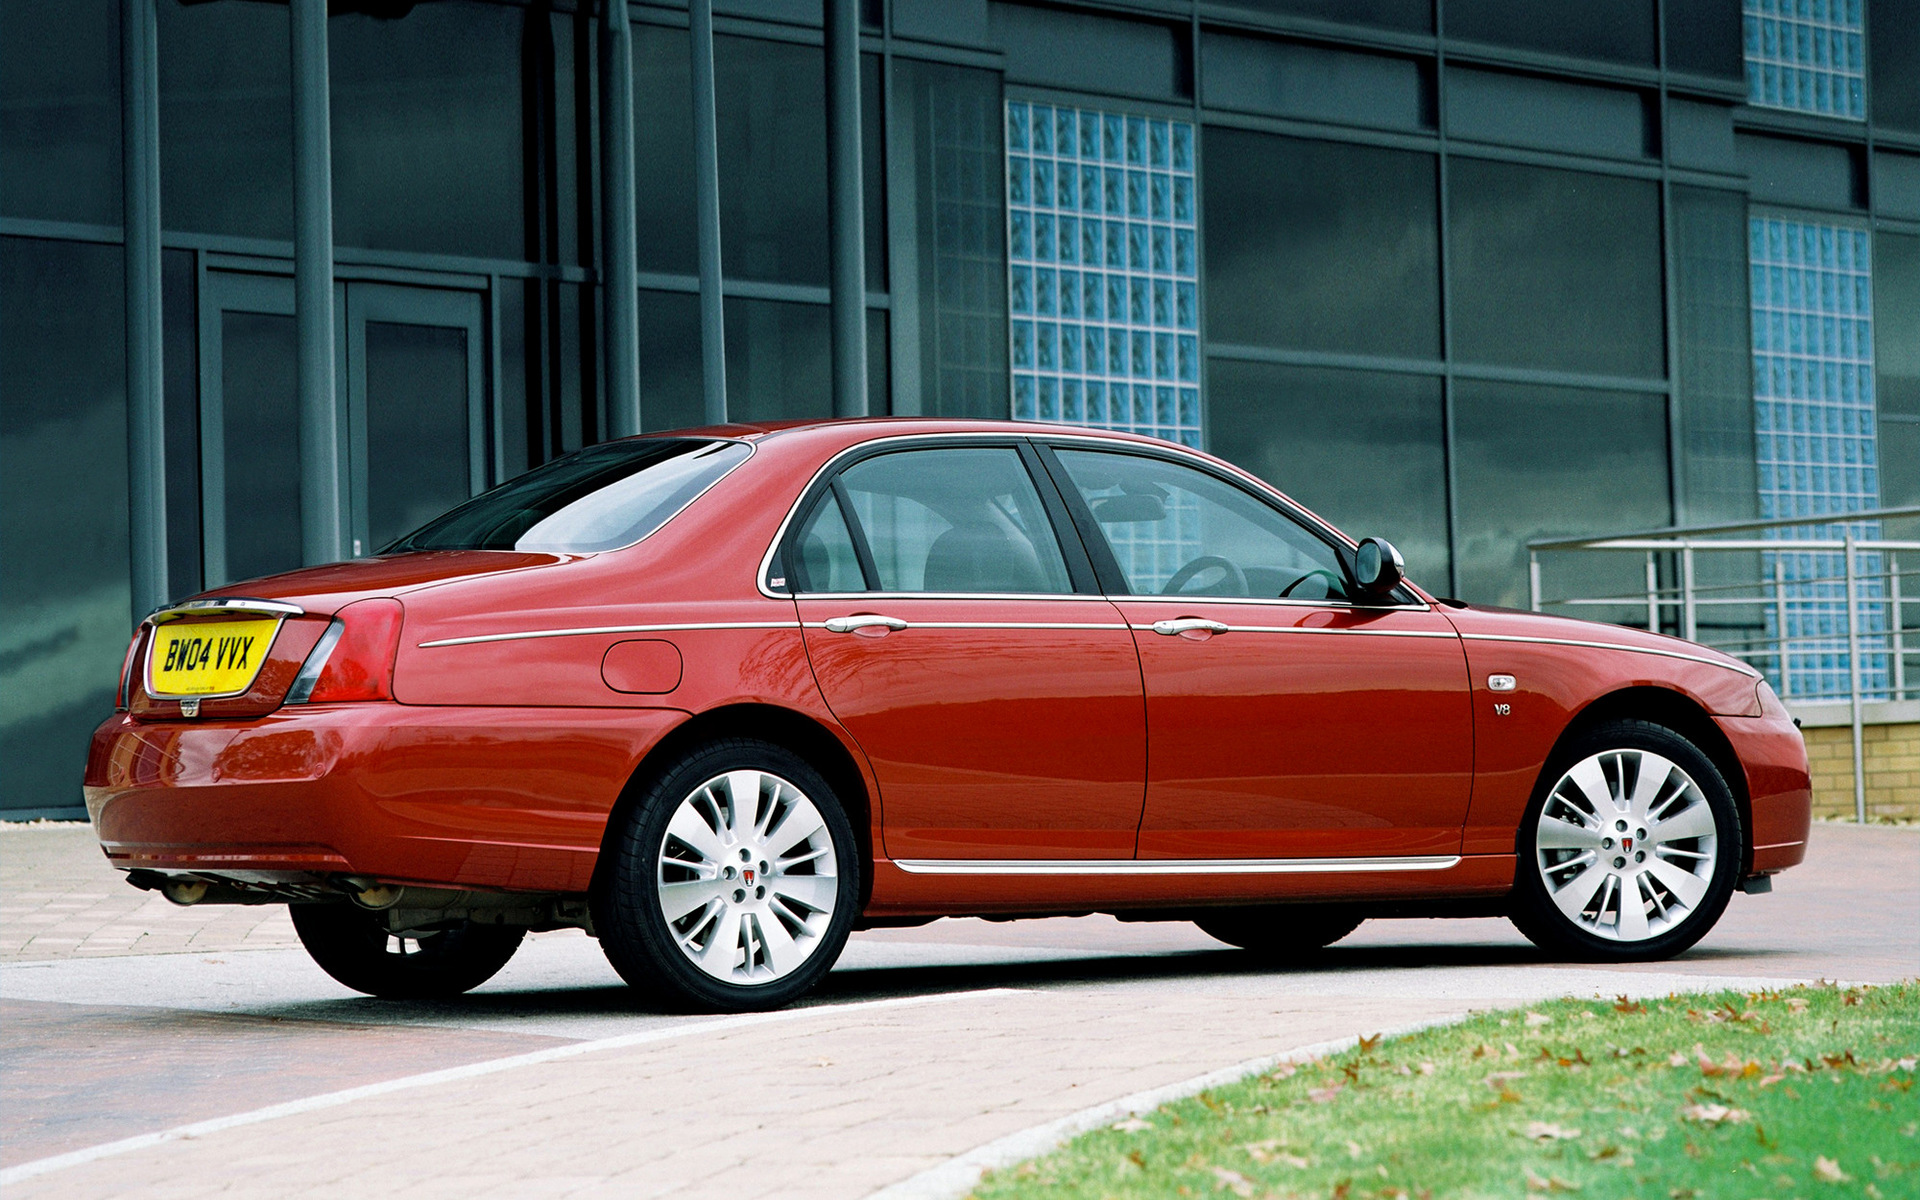 2004 Rover 75 V8 Wallpapers And Hd Images Car Pixel